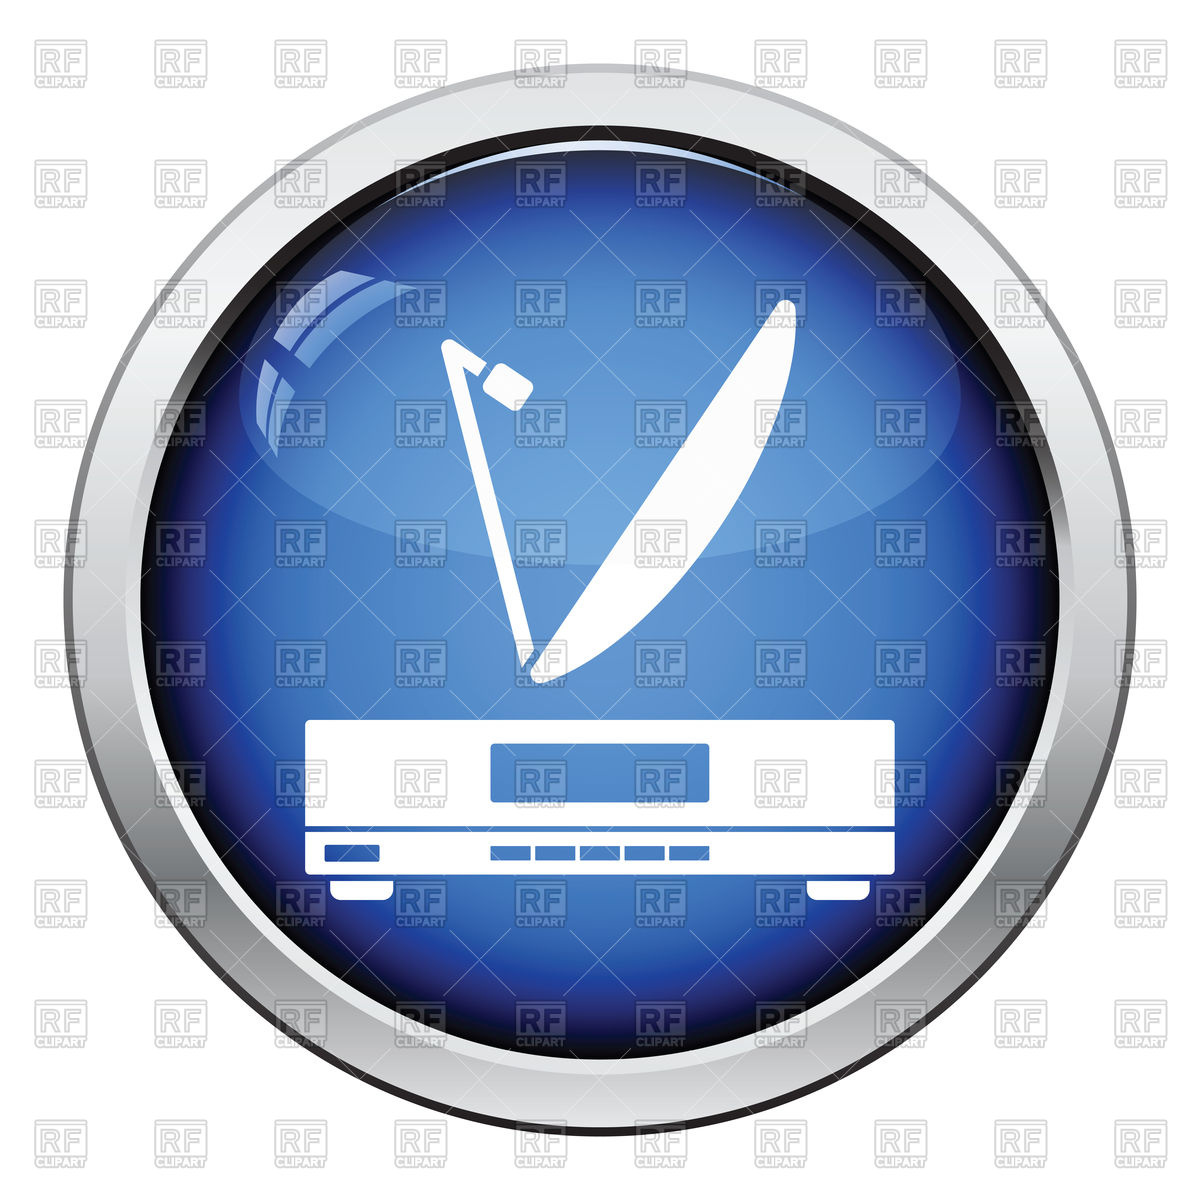 Satellite receiver with antenna icon Vector Image #120895.